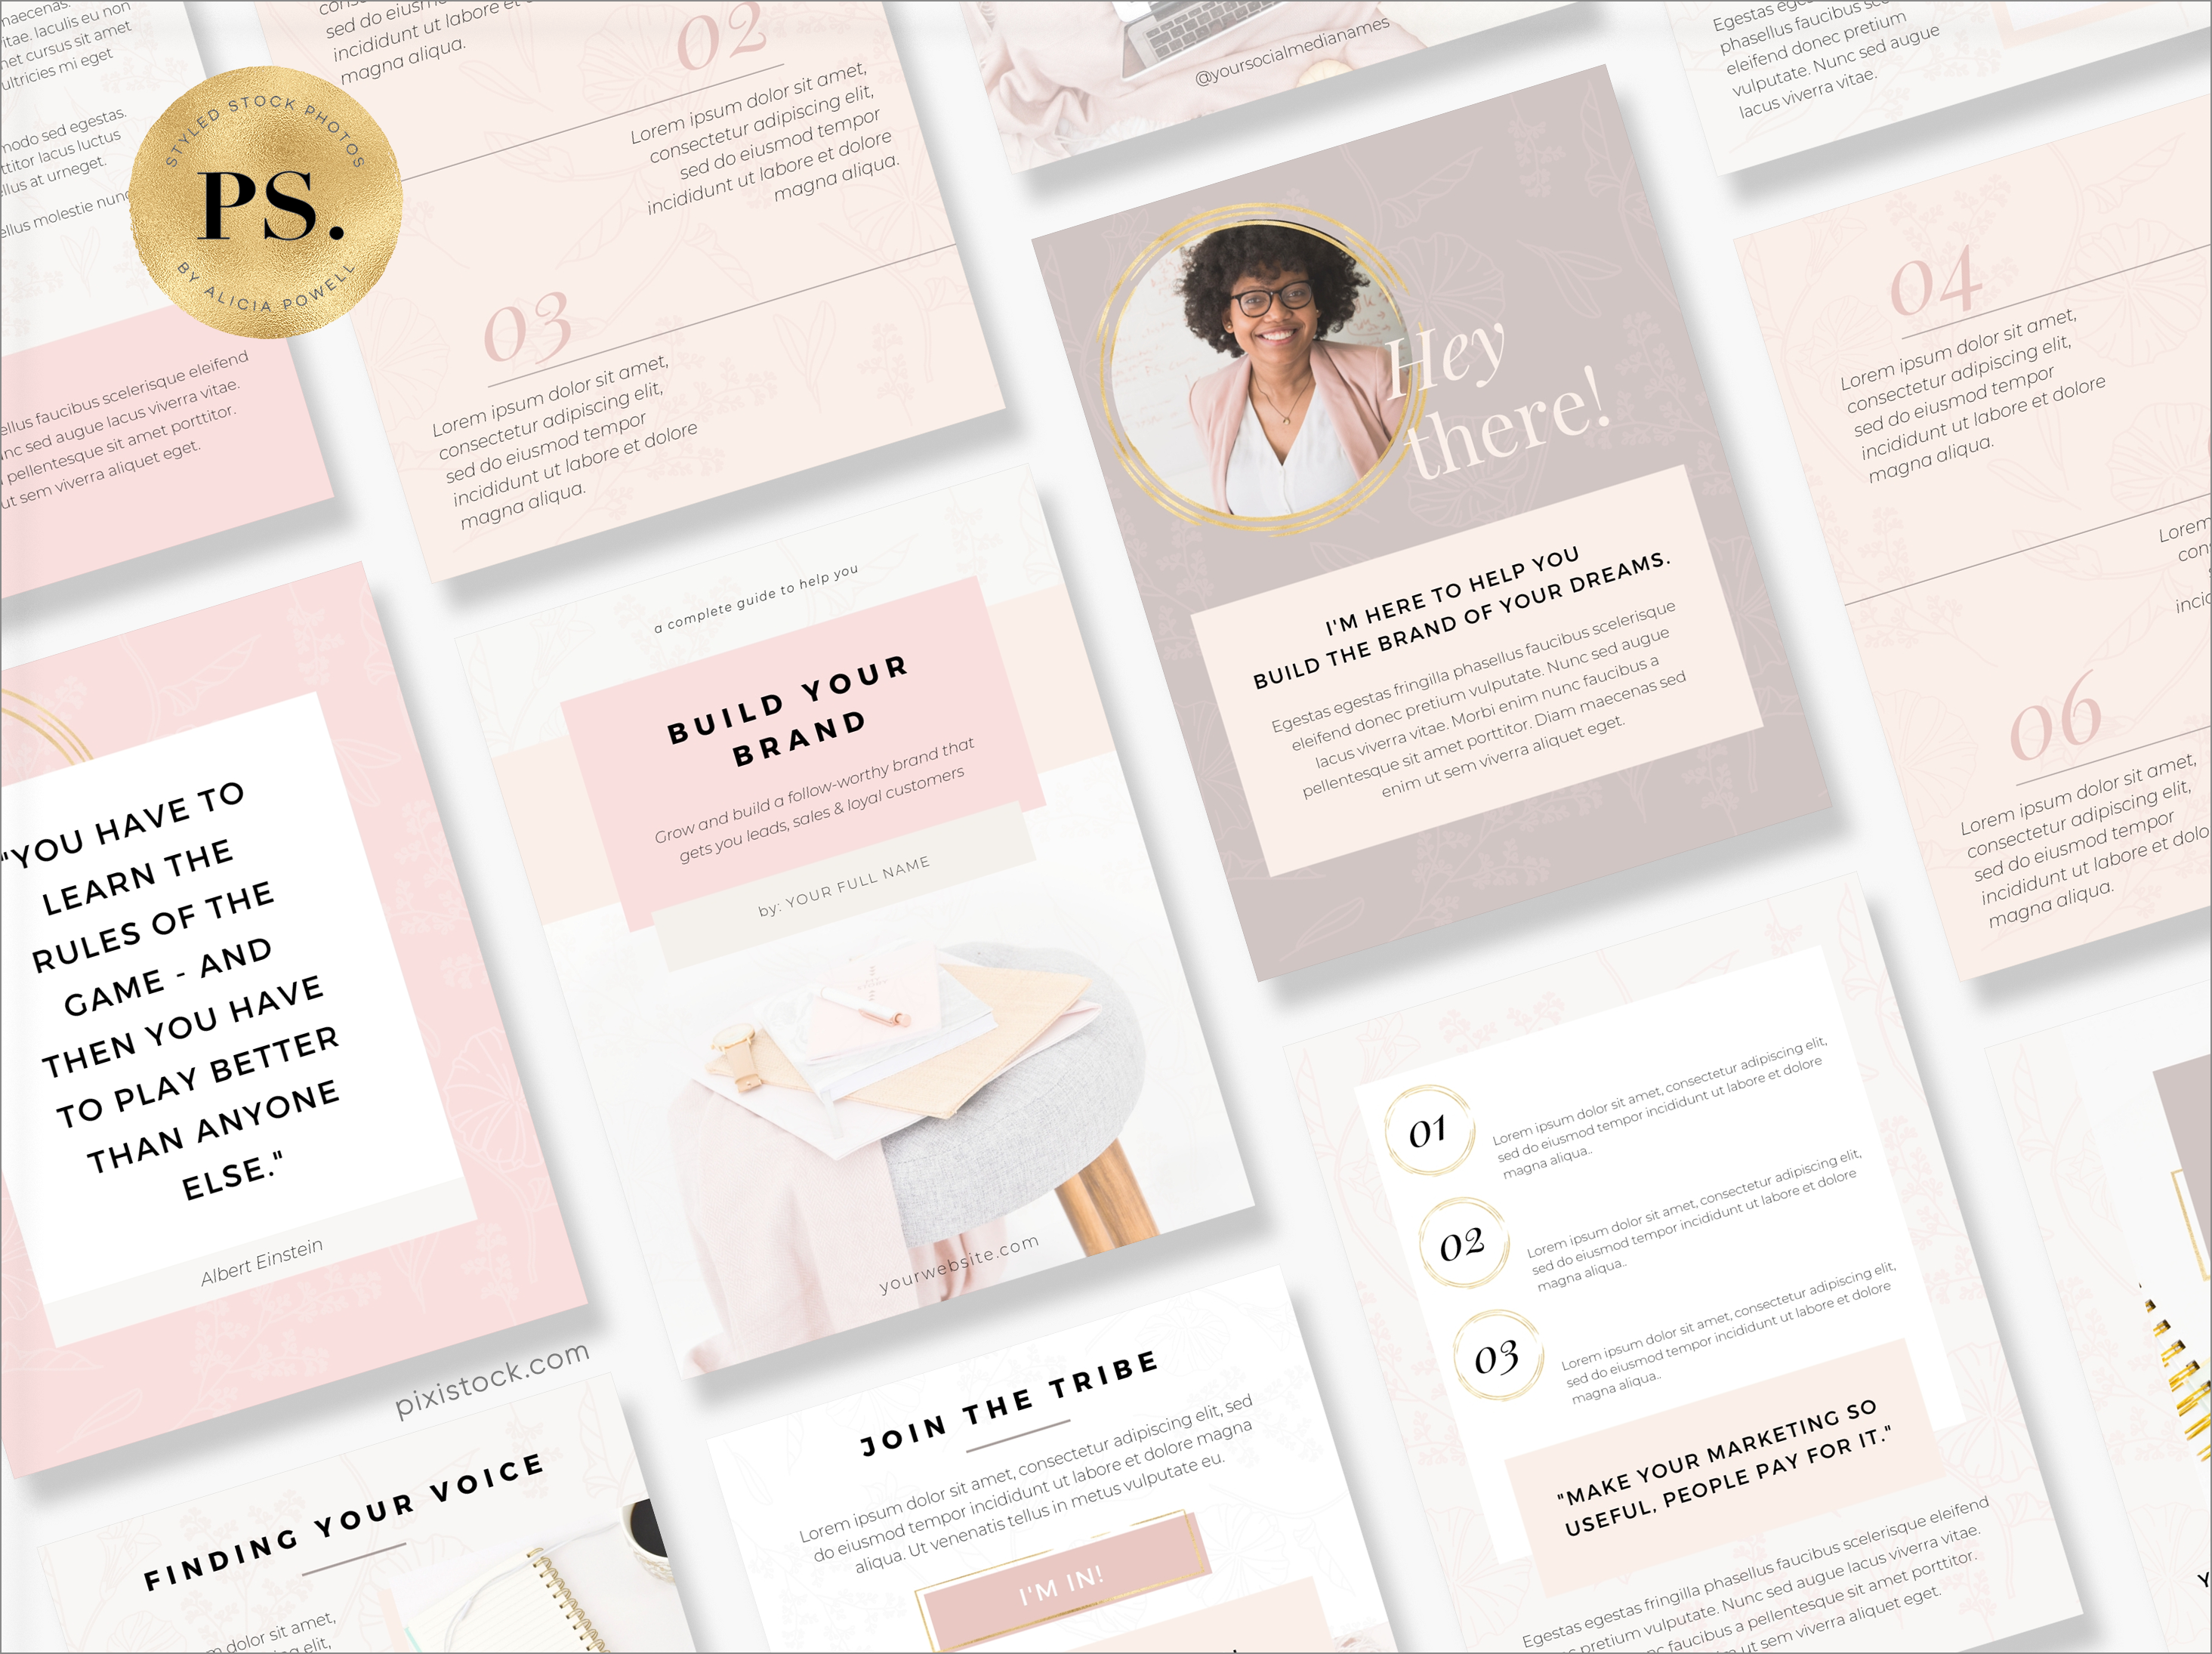 Canva Template Ebook by Pixistock - The Lovely Business